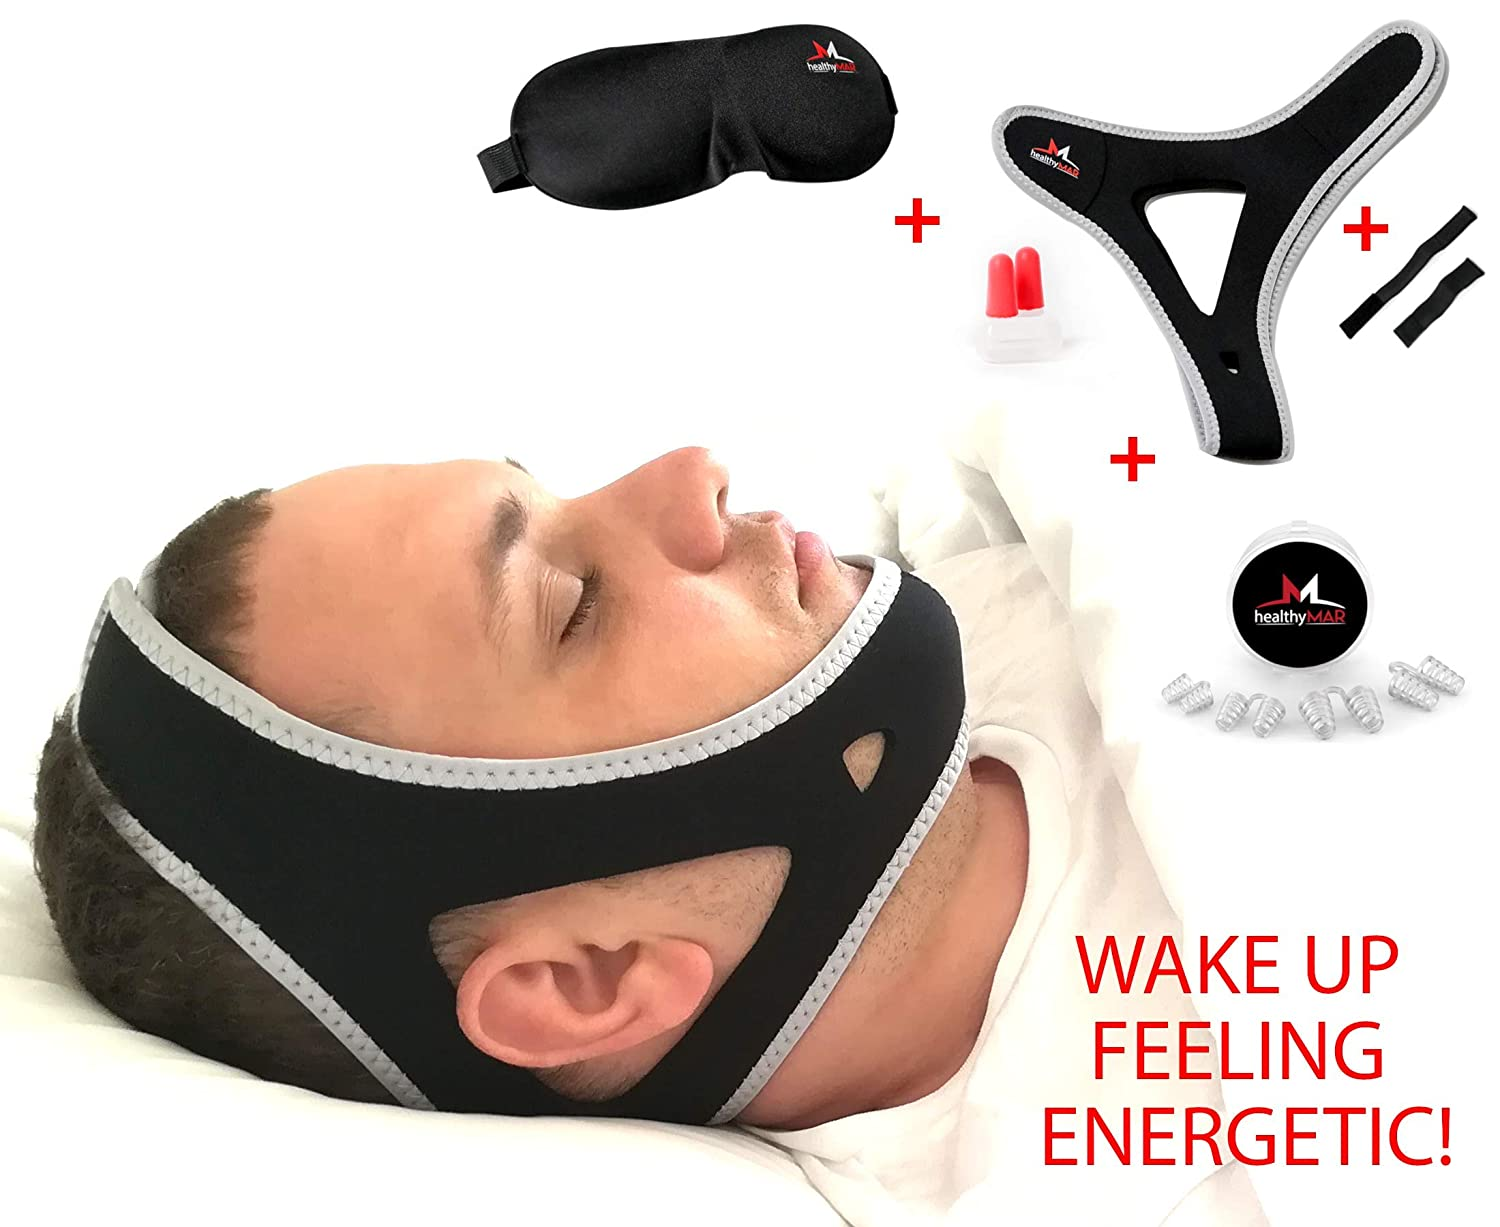 Anti Snoring Chin Strap - 4 in 1 - Snoring Solution with eBook Included